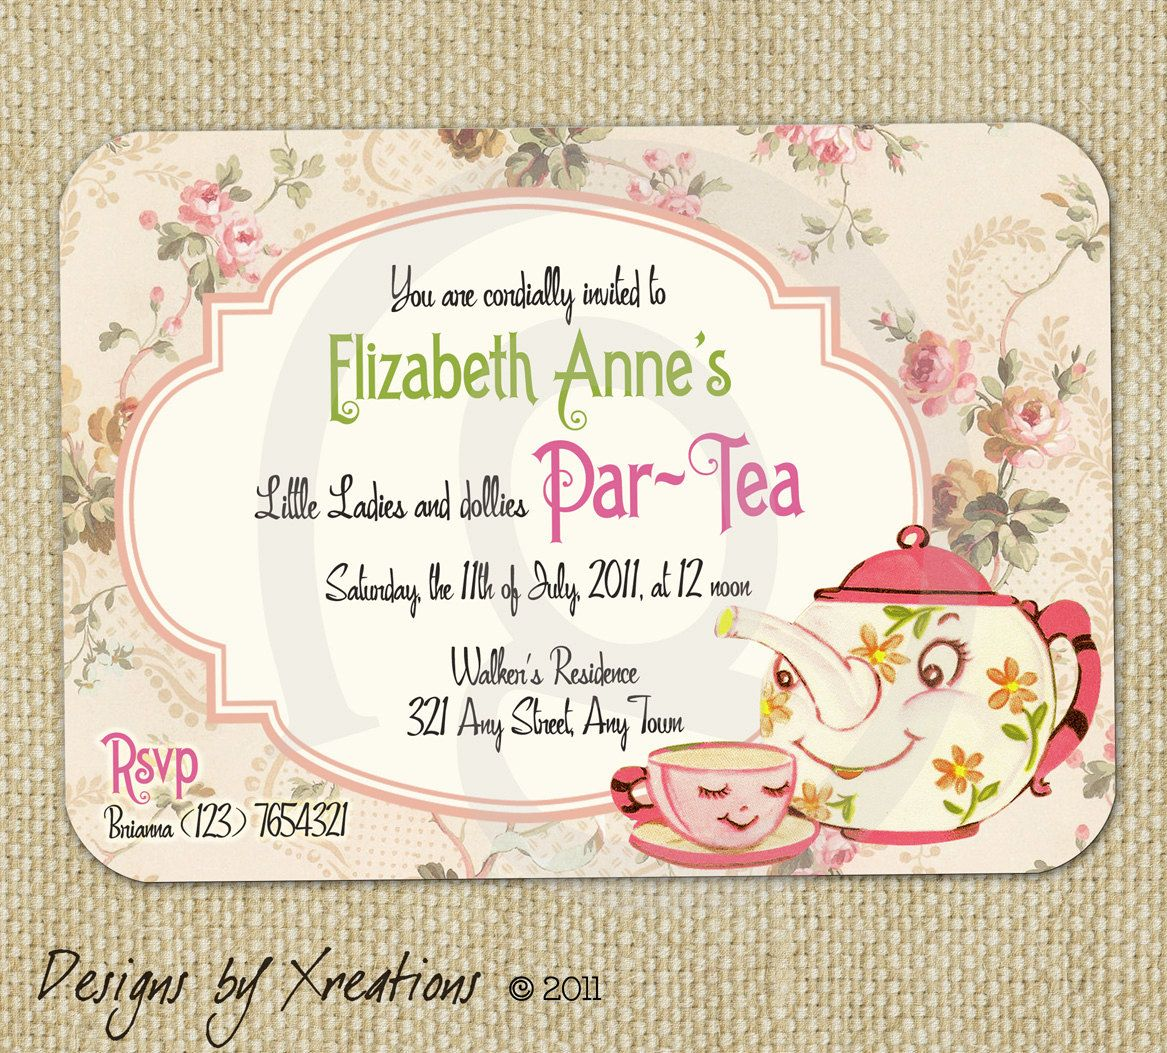 Tea party template kardasklmphotography tea party template stopboris Choice Image